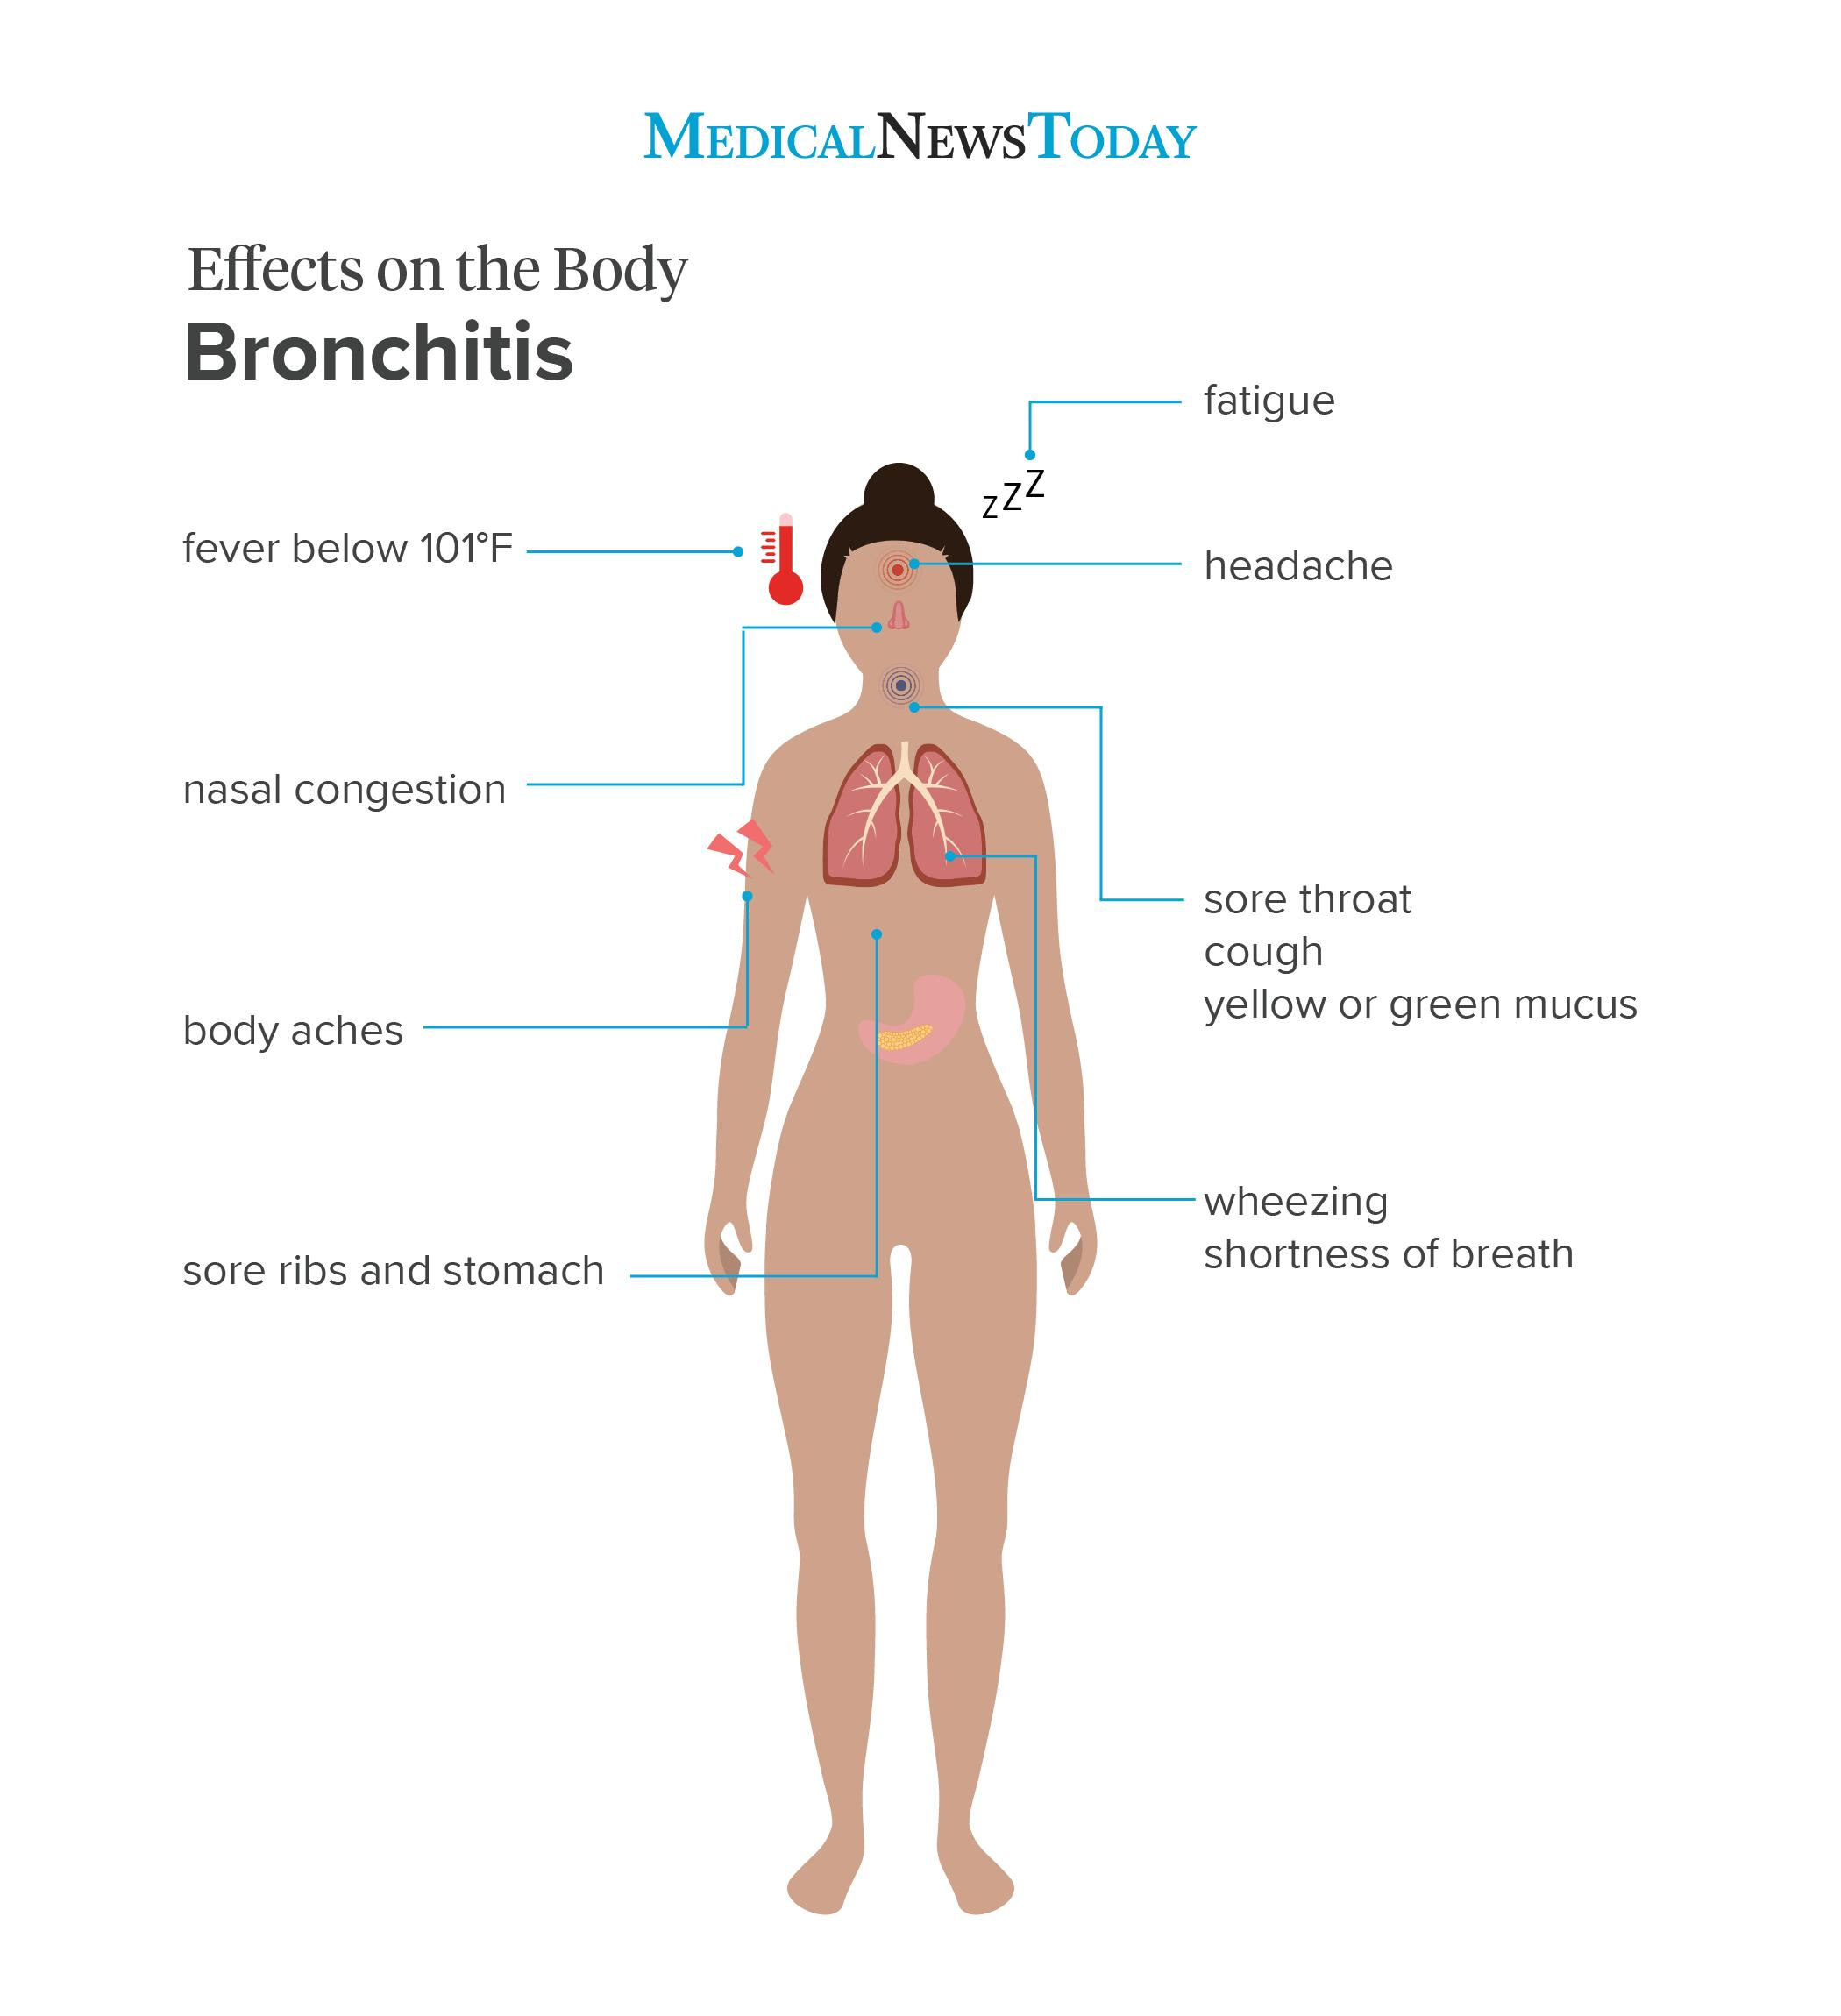 an infographic showing the effects on the body of bronchitis